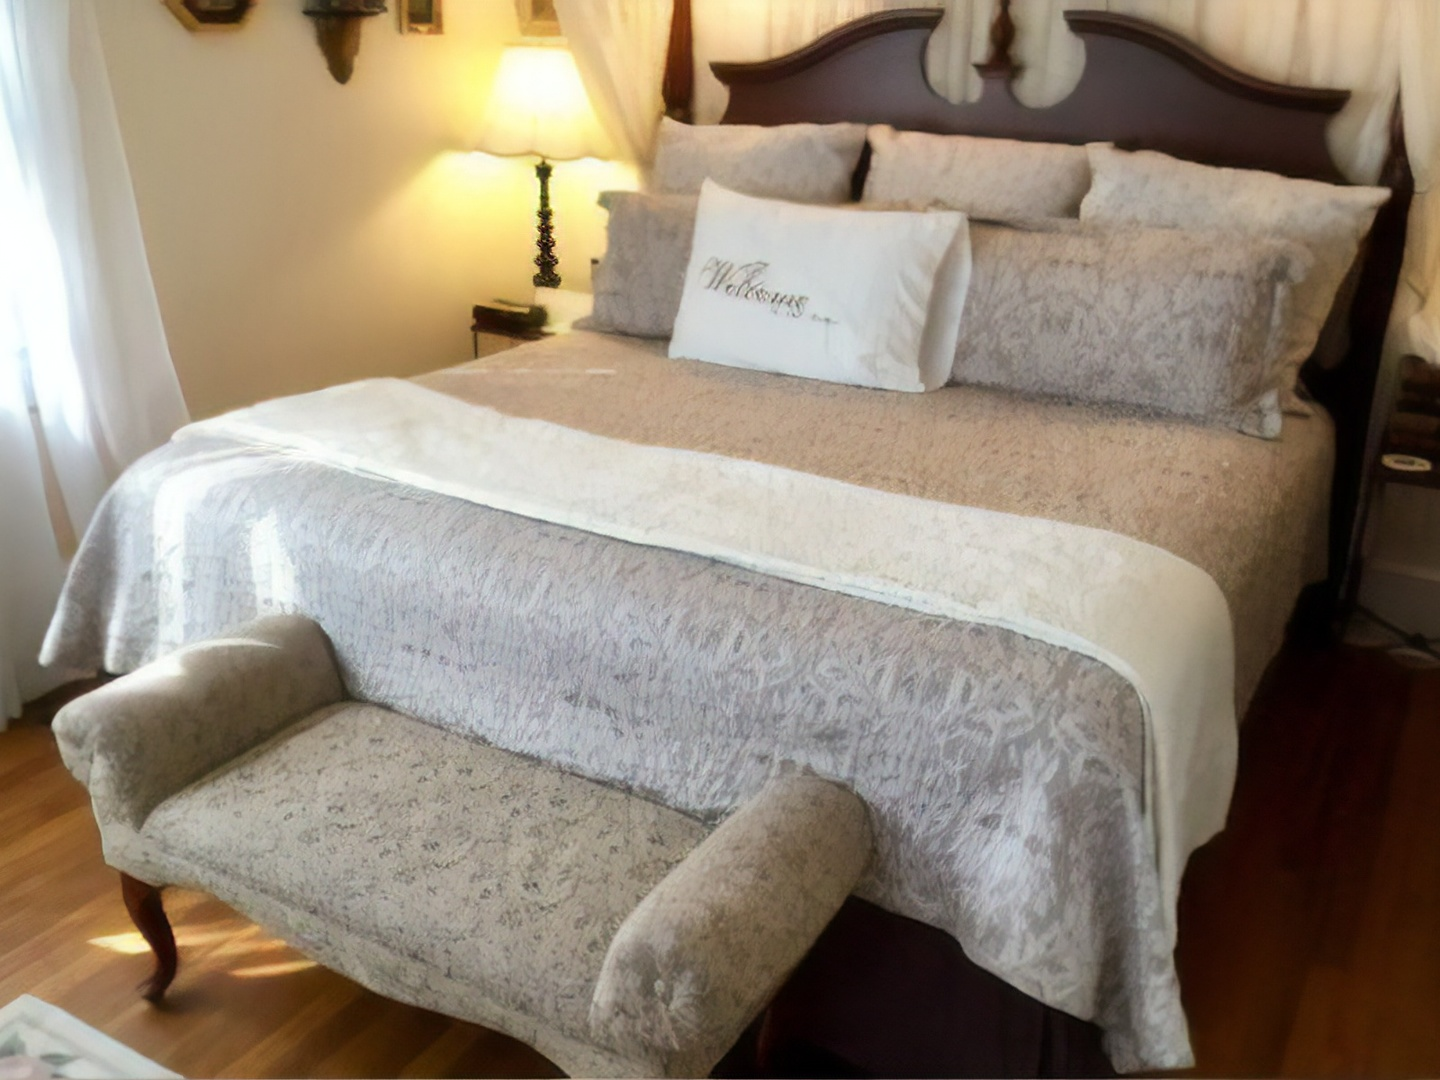 A double bed in a hotel room at Abbington Green Bed & Breakfast Inn.